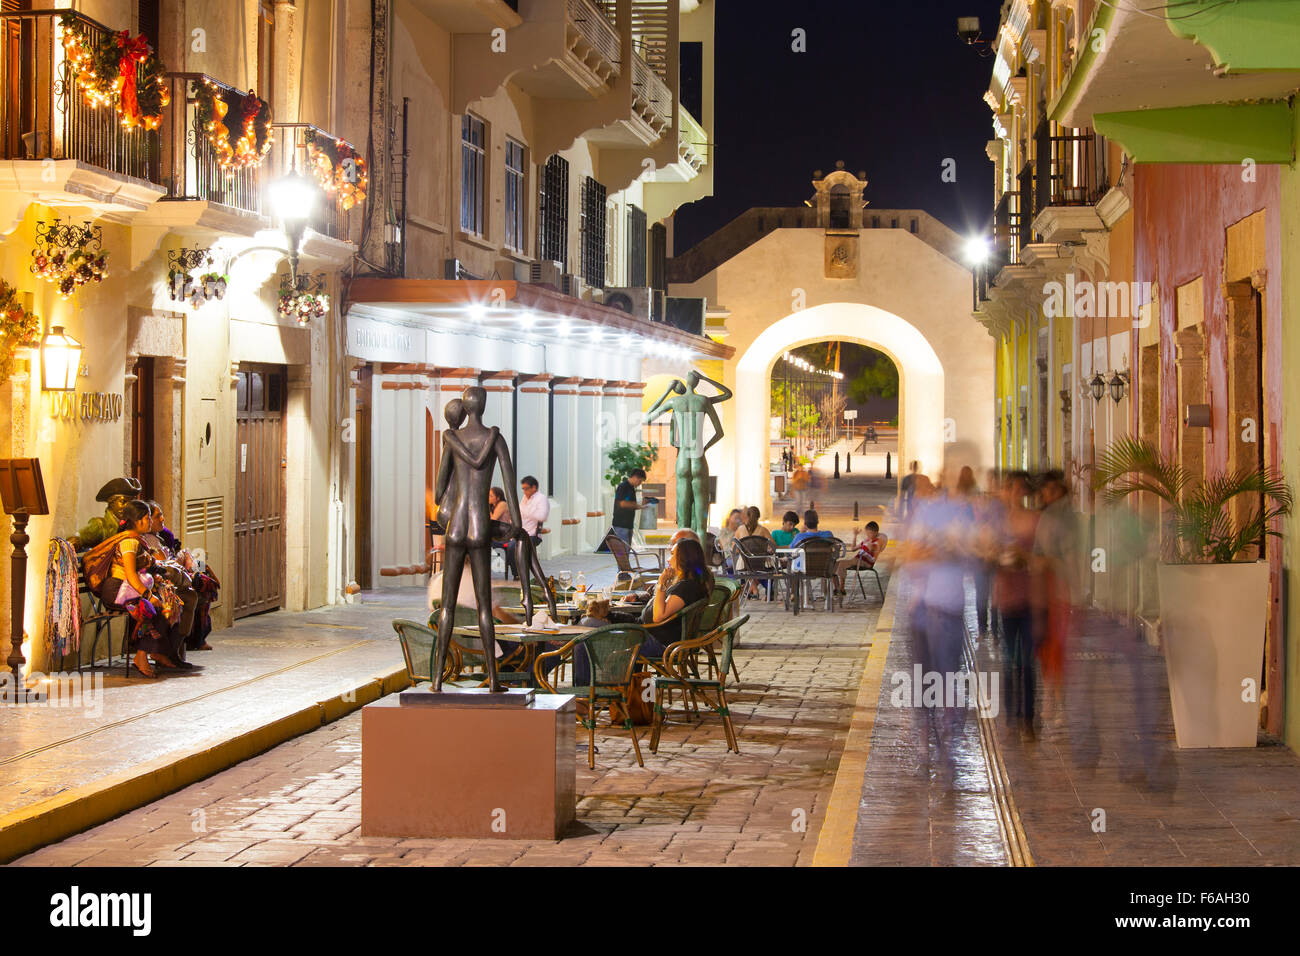 Night scene of outdoor cafes and street strollers in Campeche, Mexico. - Stock Image